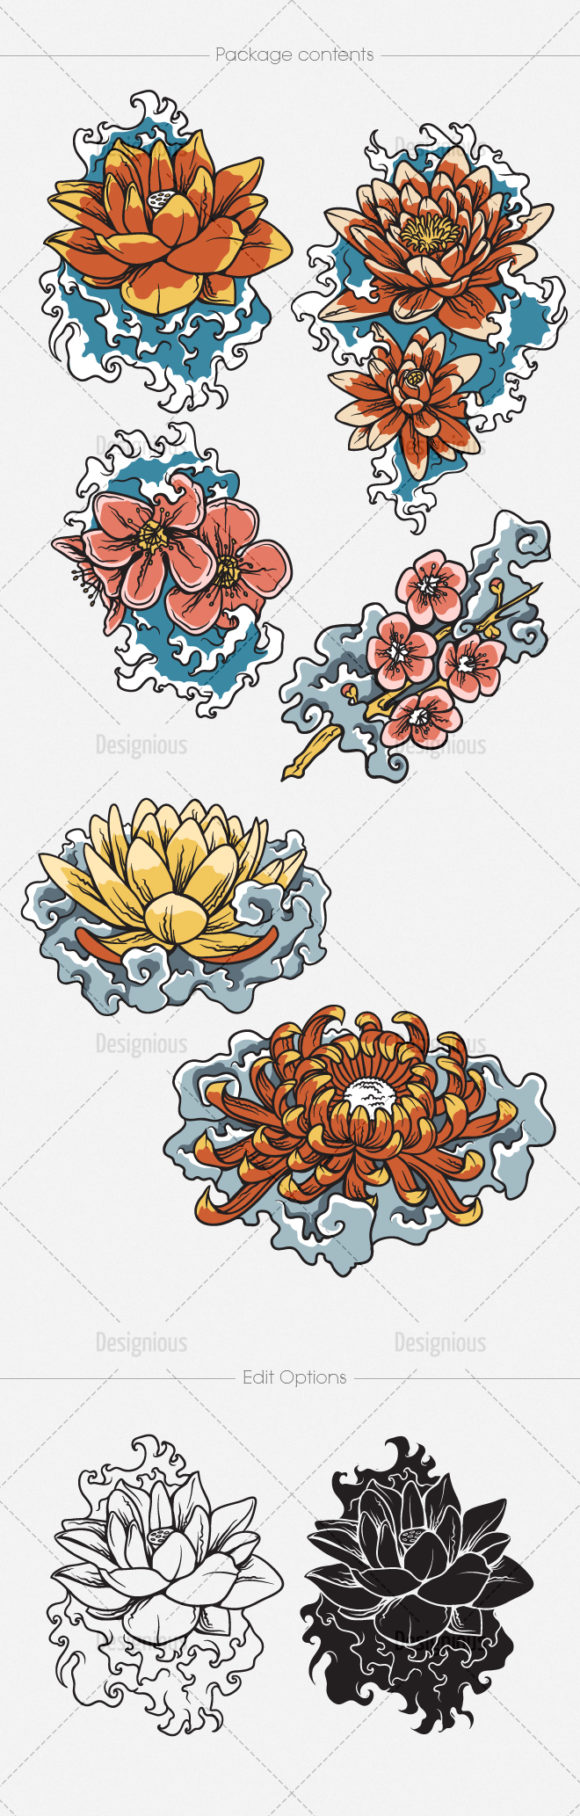 Japanese Flowers Vector Pack 2 products designious vector japanese floral 2 large